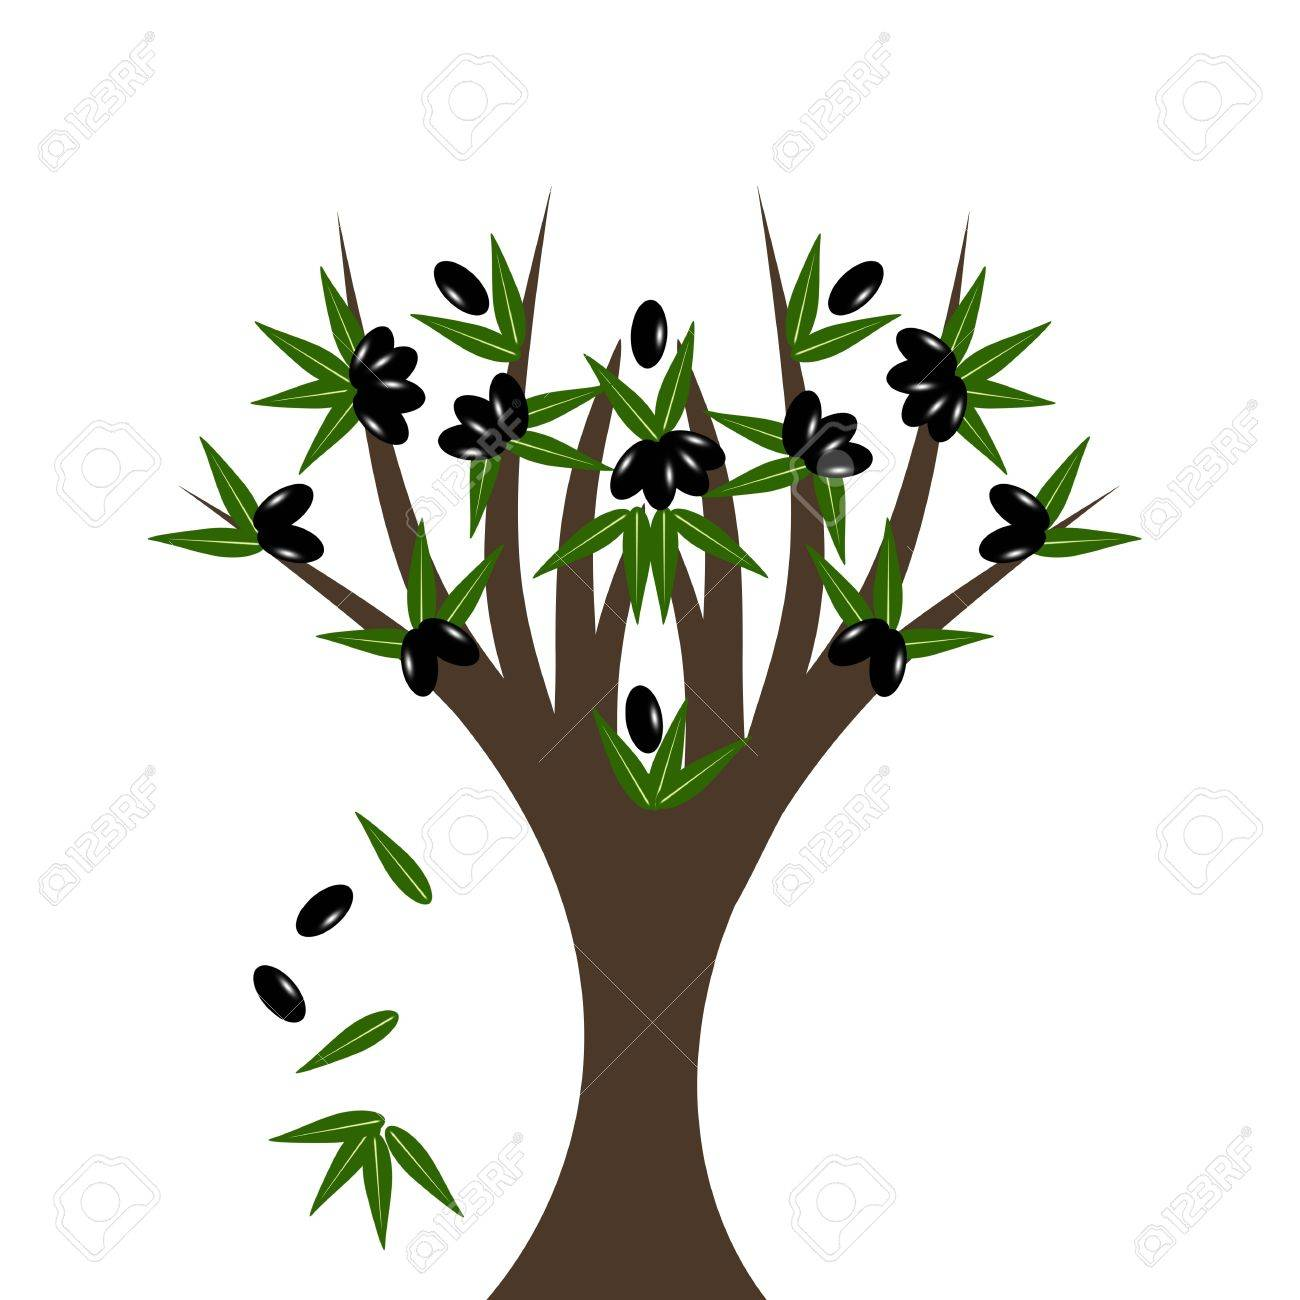 Abstract olive tree isolated on white background Stock Vector - 10554597